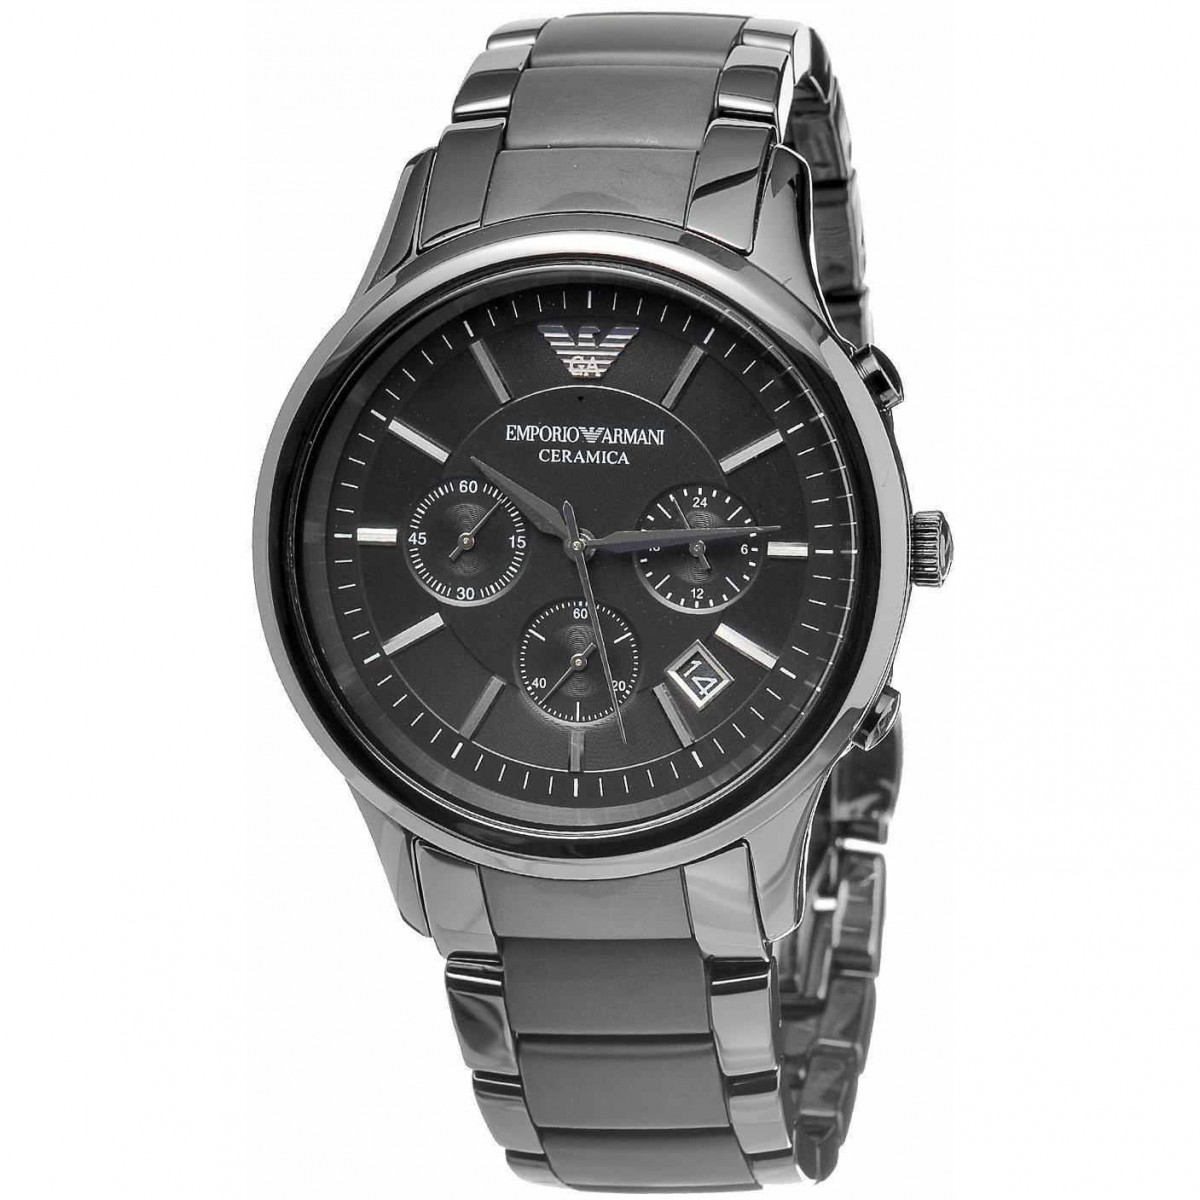 Mens Emporio Armani Ceramic Chronograph Watch AR1452